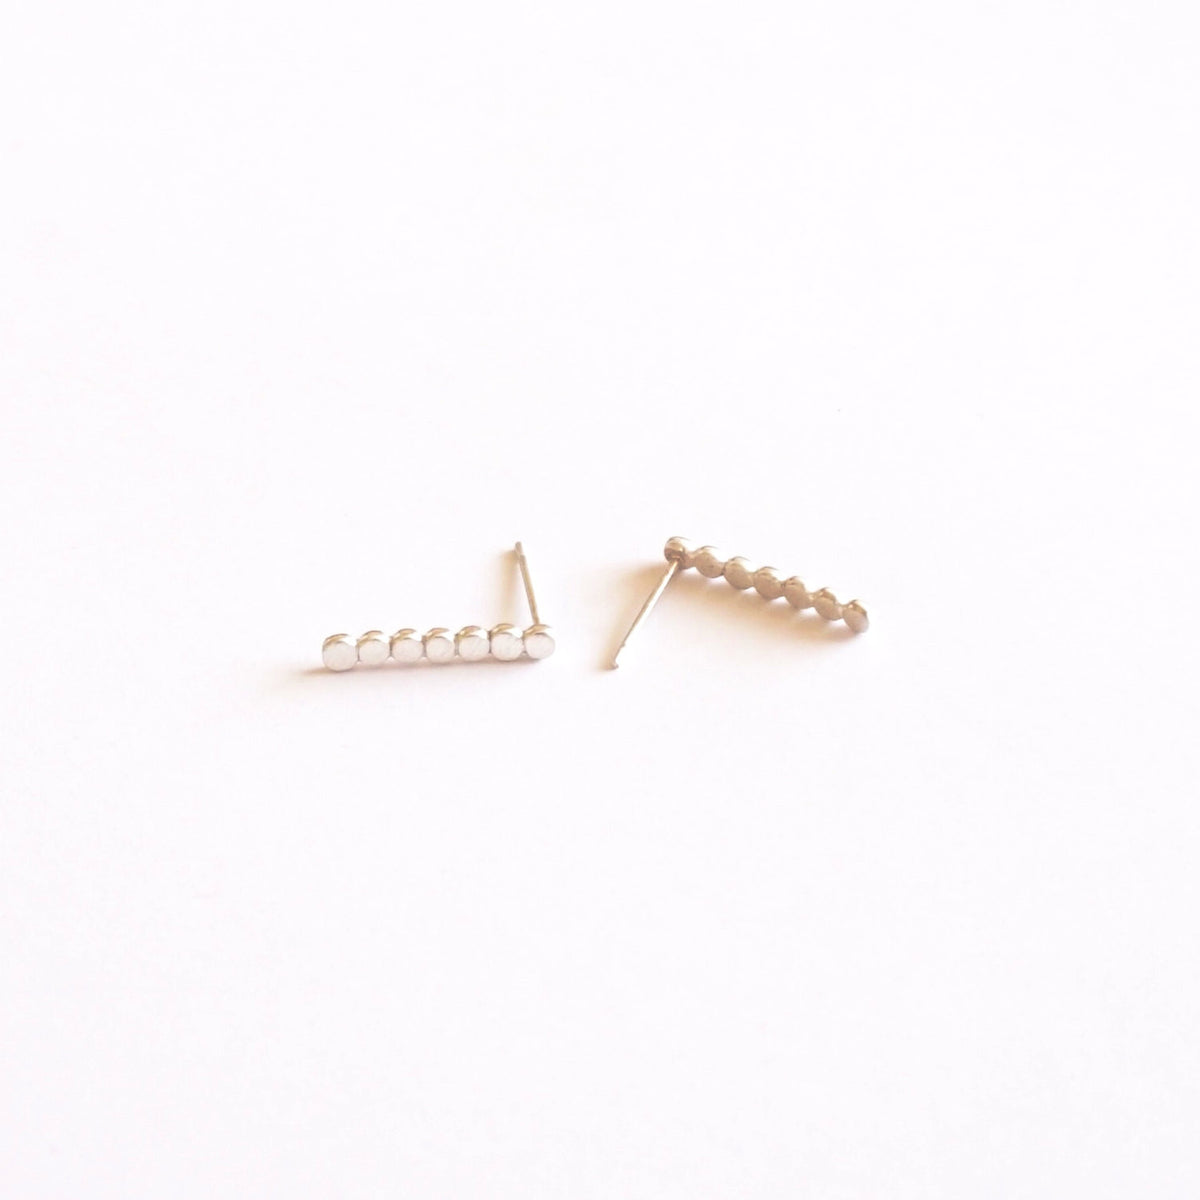 Long Circle Minimalistic Hand-Made Silver Bar Stud Earrings - 0216 - Virginia Wynne Designs